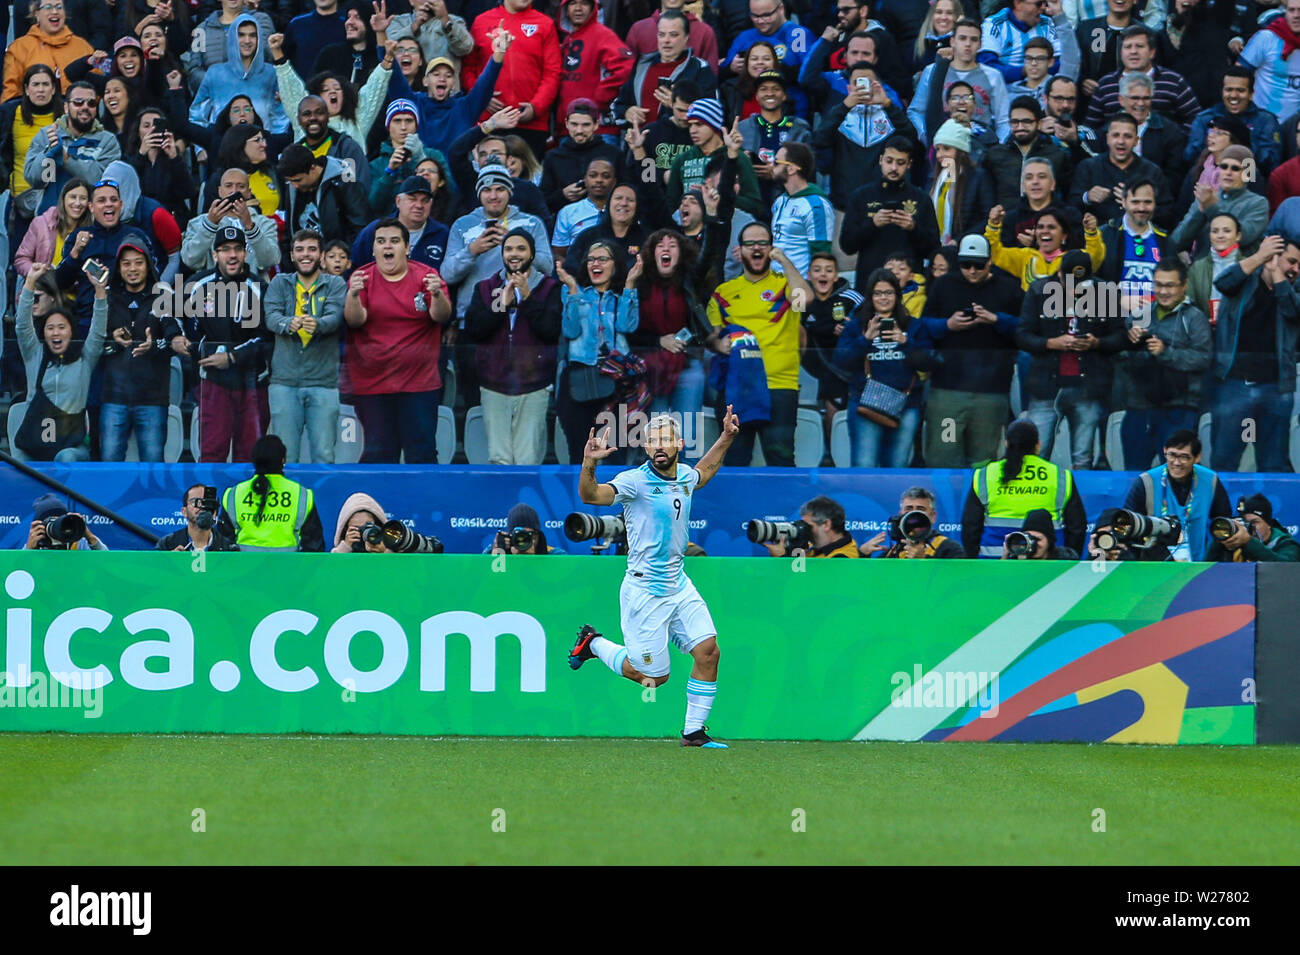 Brazil. 6th July, 2019. Aguero celebrate goal in the Game of the match between Argentina X Chile valid for third place dispute of Copa America 2019, in the Arena Corinthians, in São Paulo, this Saturday (06). Photo: Geraldo Bubniak Credit: Geraldo Bubniak/ZUMA Wire/Alamy Live News - Stock Image